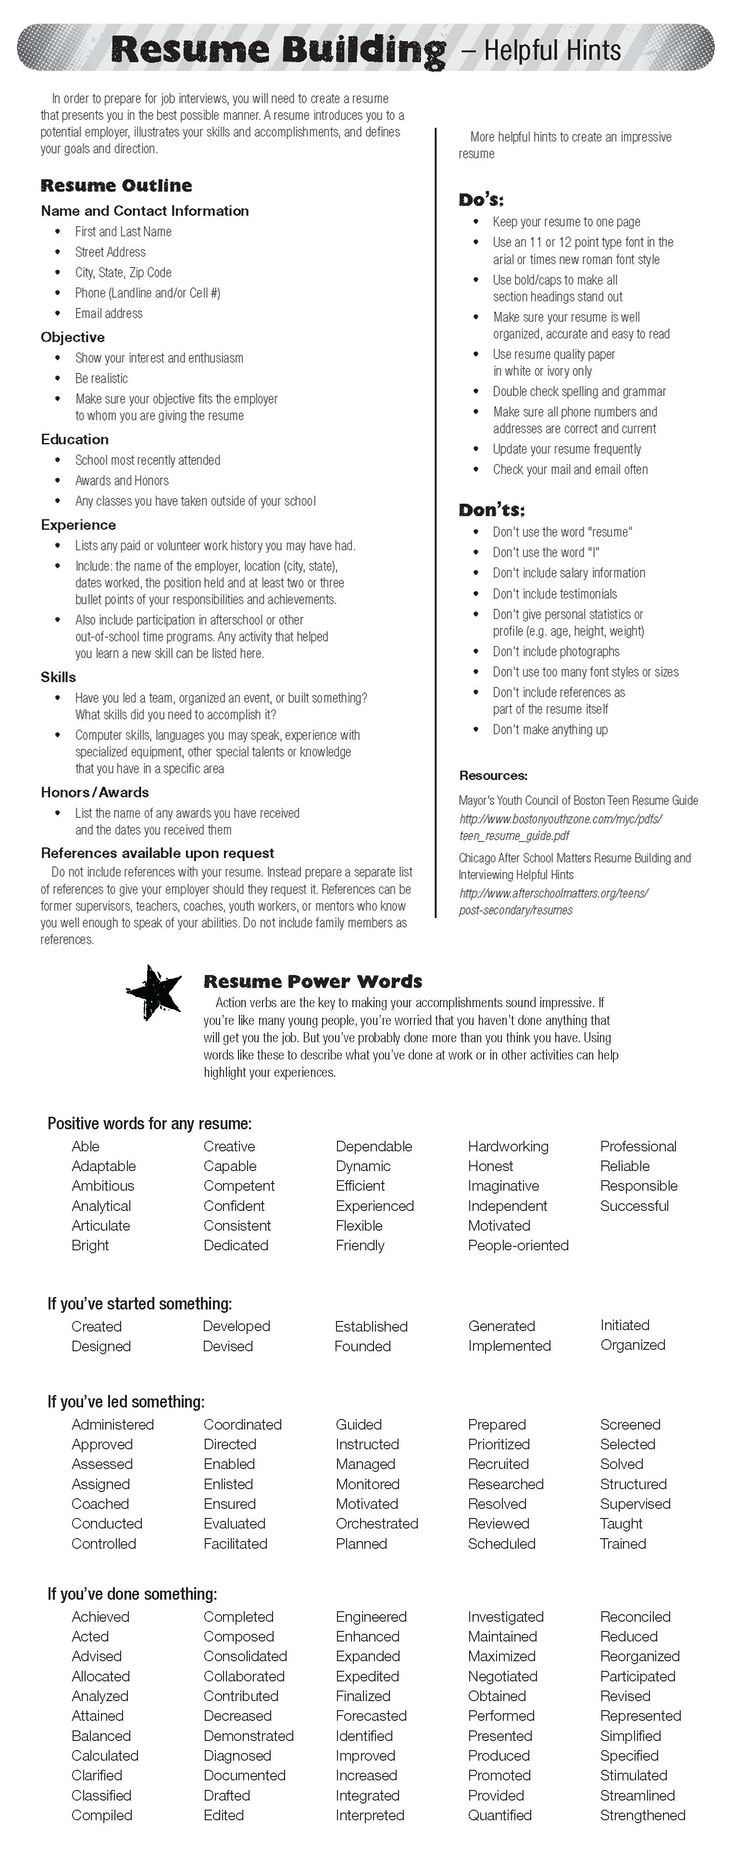 Opposenewapstandardsus  Winning  Ideas About Resume On Pinterest  Cv Format Resume Cv And  With Fair  Ideas About Resume On Pinterest  Cv Format Resume Cv And Resume Templates With Beautiful Best Free Resume Also What Should A Resume Have In Addition Wyotech Resume And Industrial Electrician Resume As Well As Outline Of Resume Additionally Resumes For High School Students With No Work Experience From Pinterestcom With Opposenewapstandardsus  Fair  Ideas About Resume On Pinterest  Cv Format Resume Cv And  With Beautiful  Ideas About Resume On Pinterest  Cv Format Resume Cv And Resume Templates And Winning Best Free Resume Also What Should A Resume Have In Addition Wyotech Resume From Pinterestcom